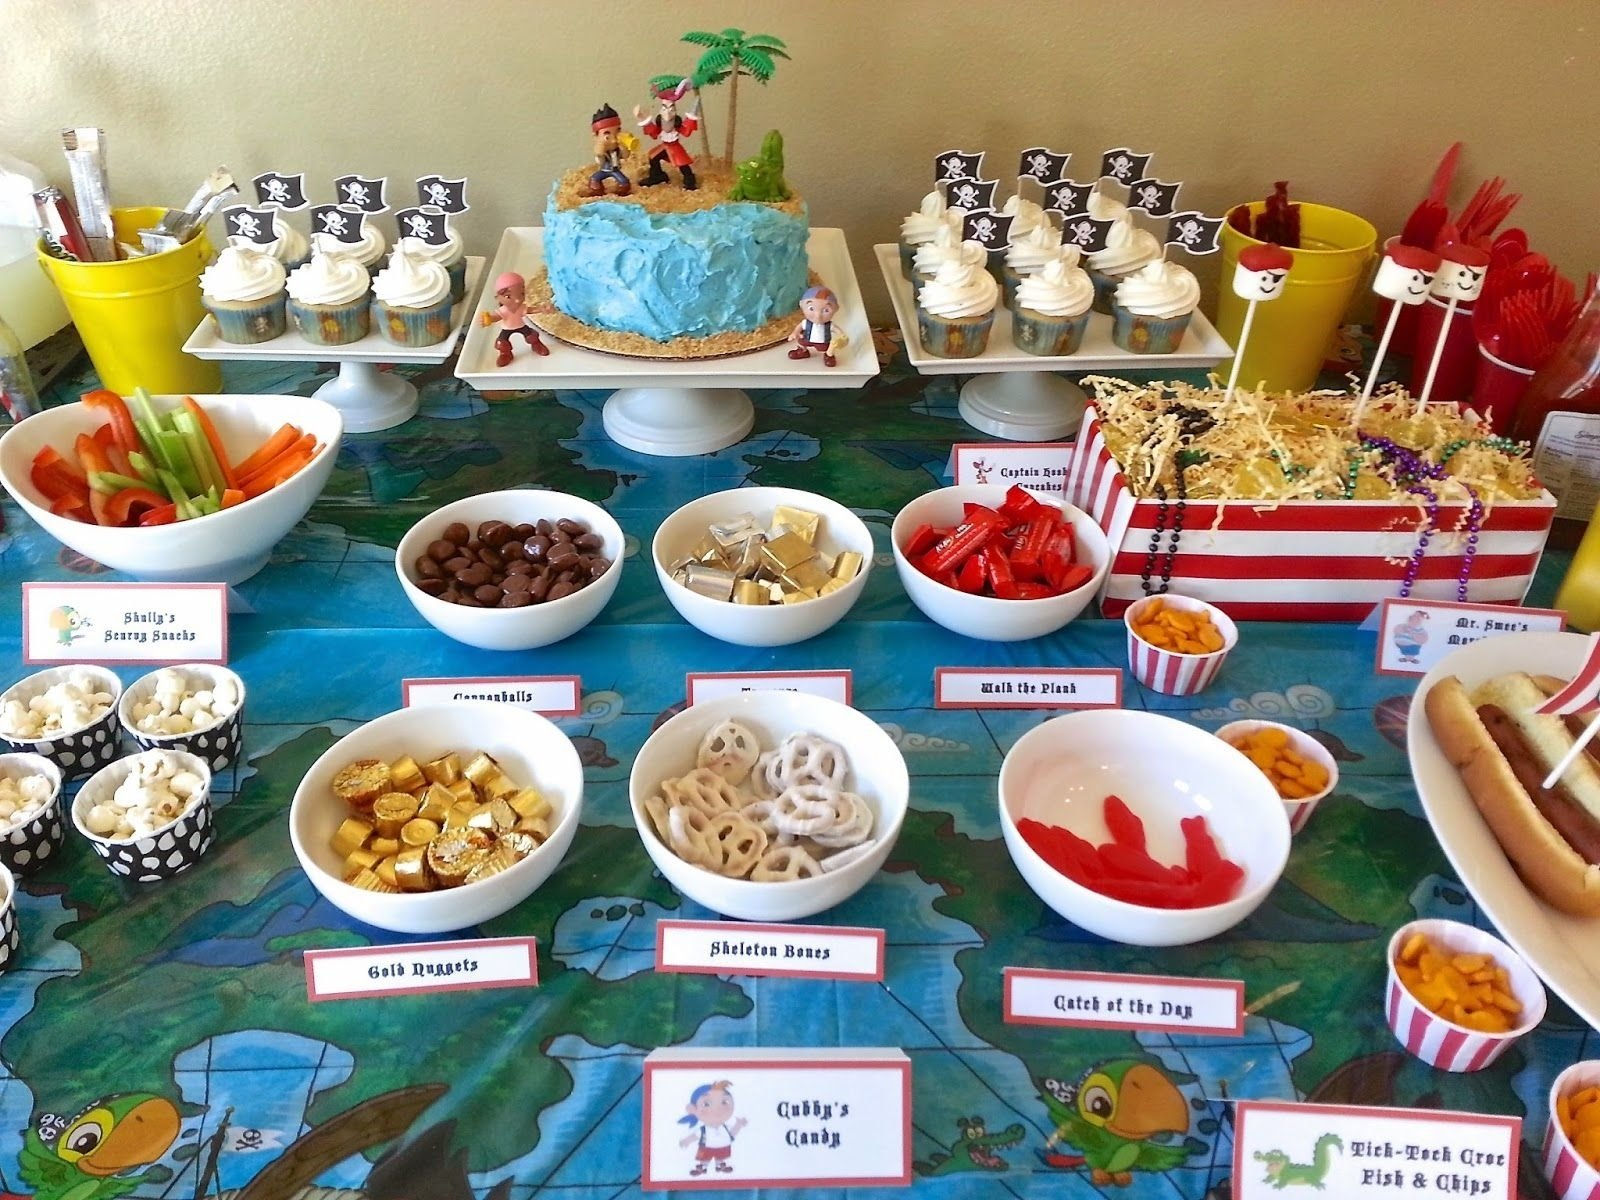 10 Ideal Jake And The Neverland Pirate Birthday Party Ideas much kneaded jake and the neverland pirates birthday party party 4 2020